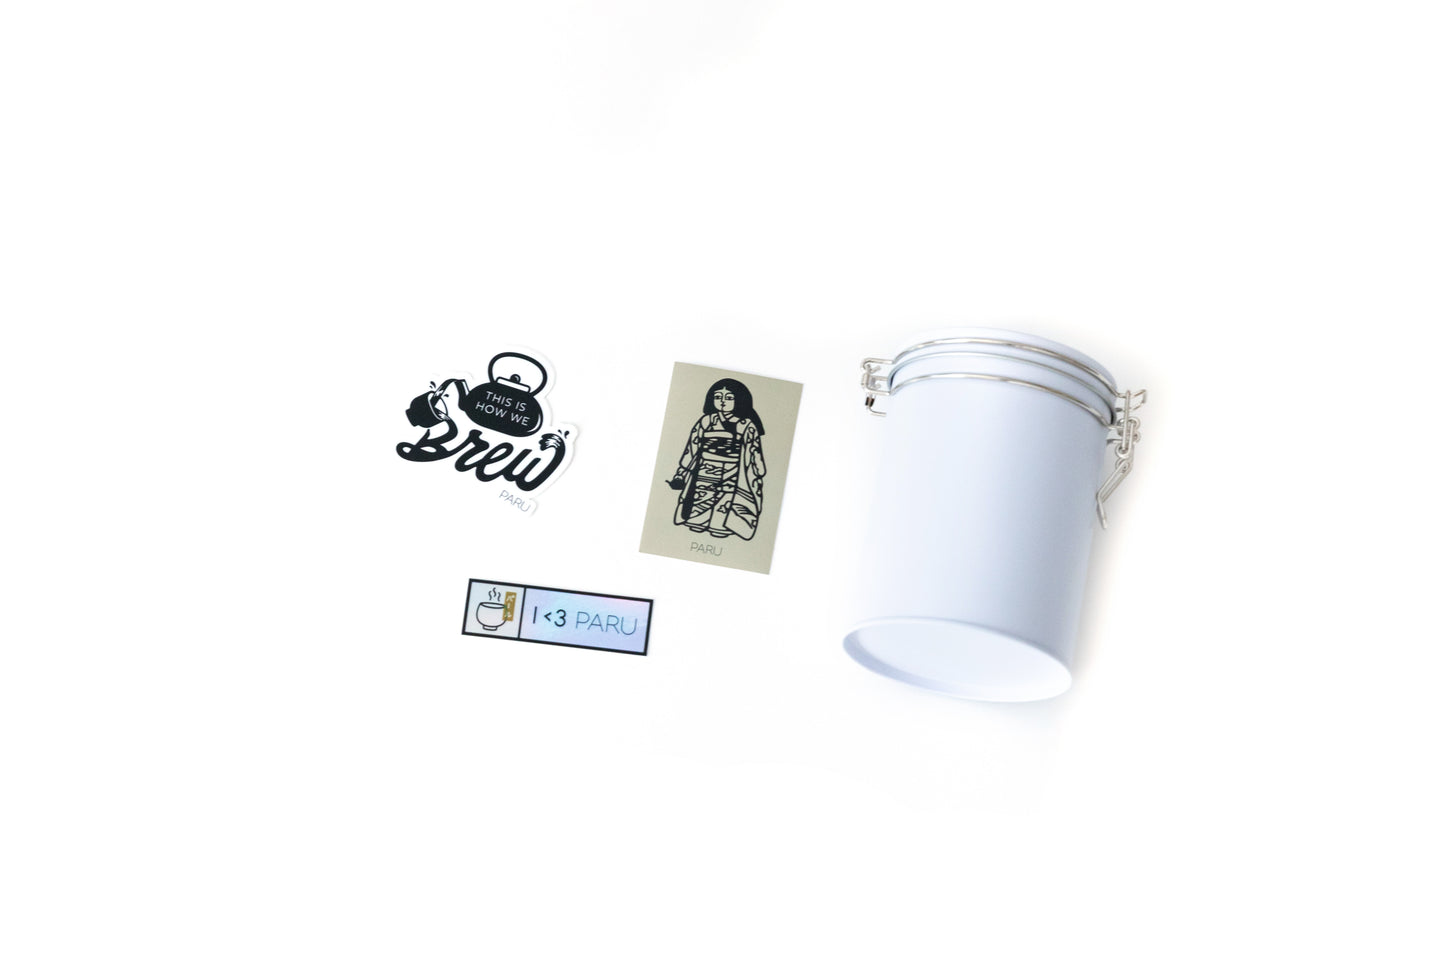 PARU Tea Canister with Sticker Pack